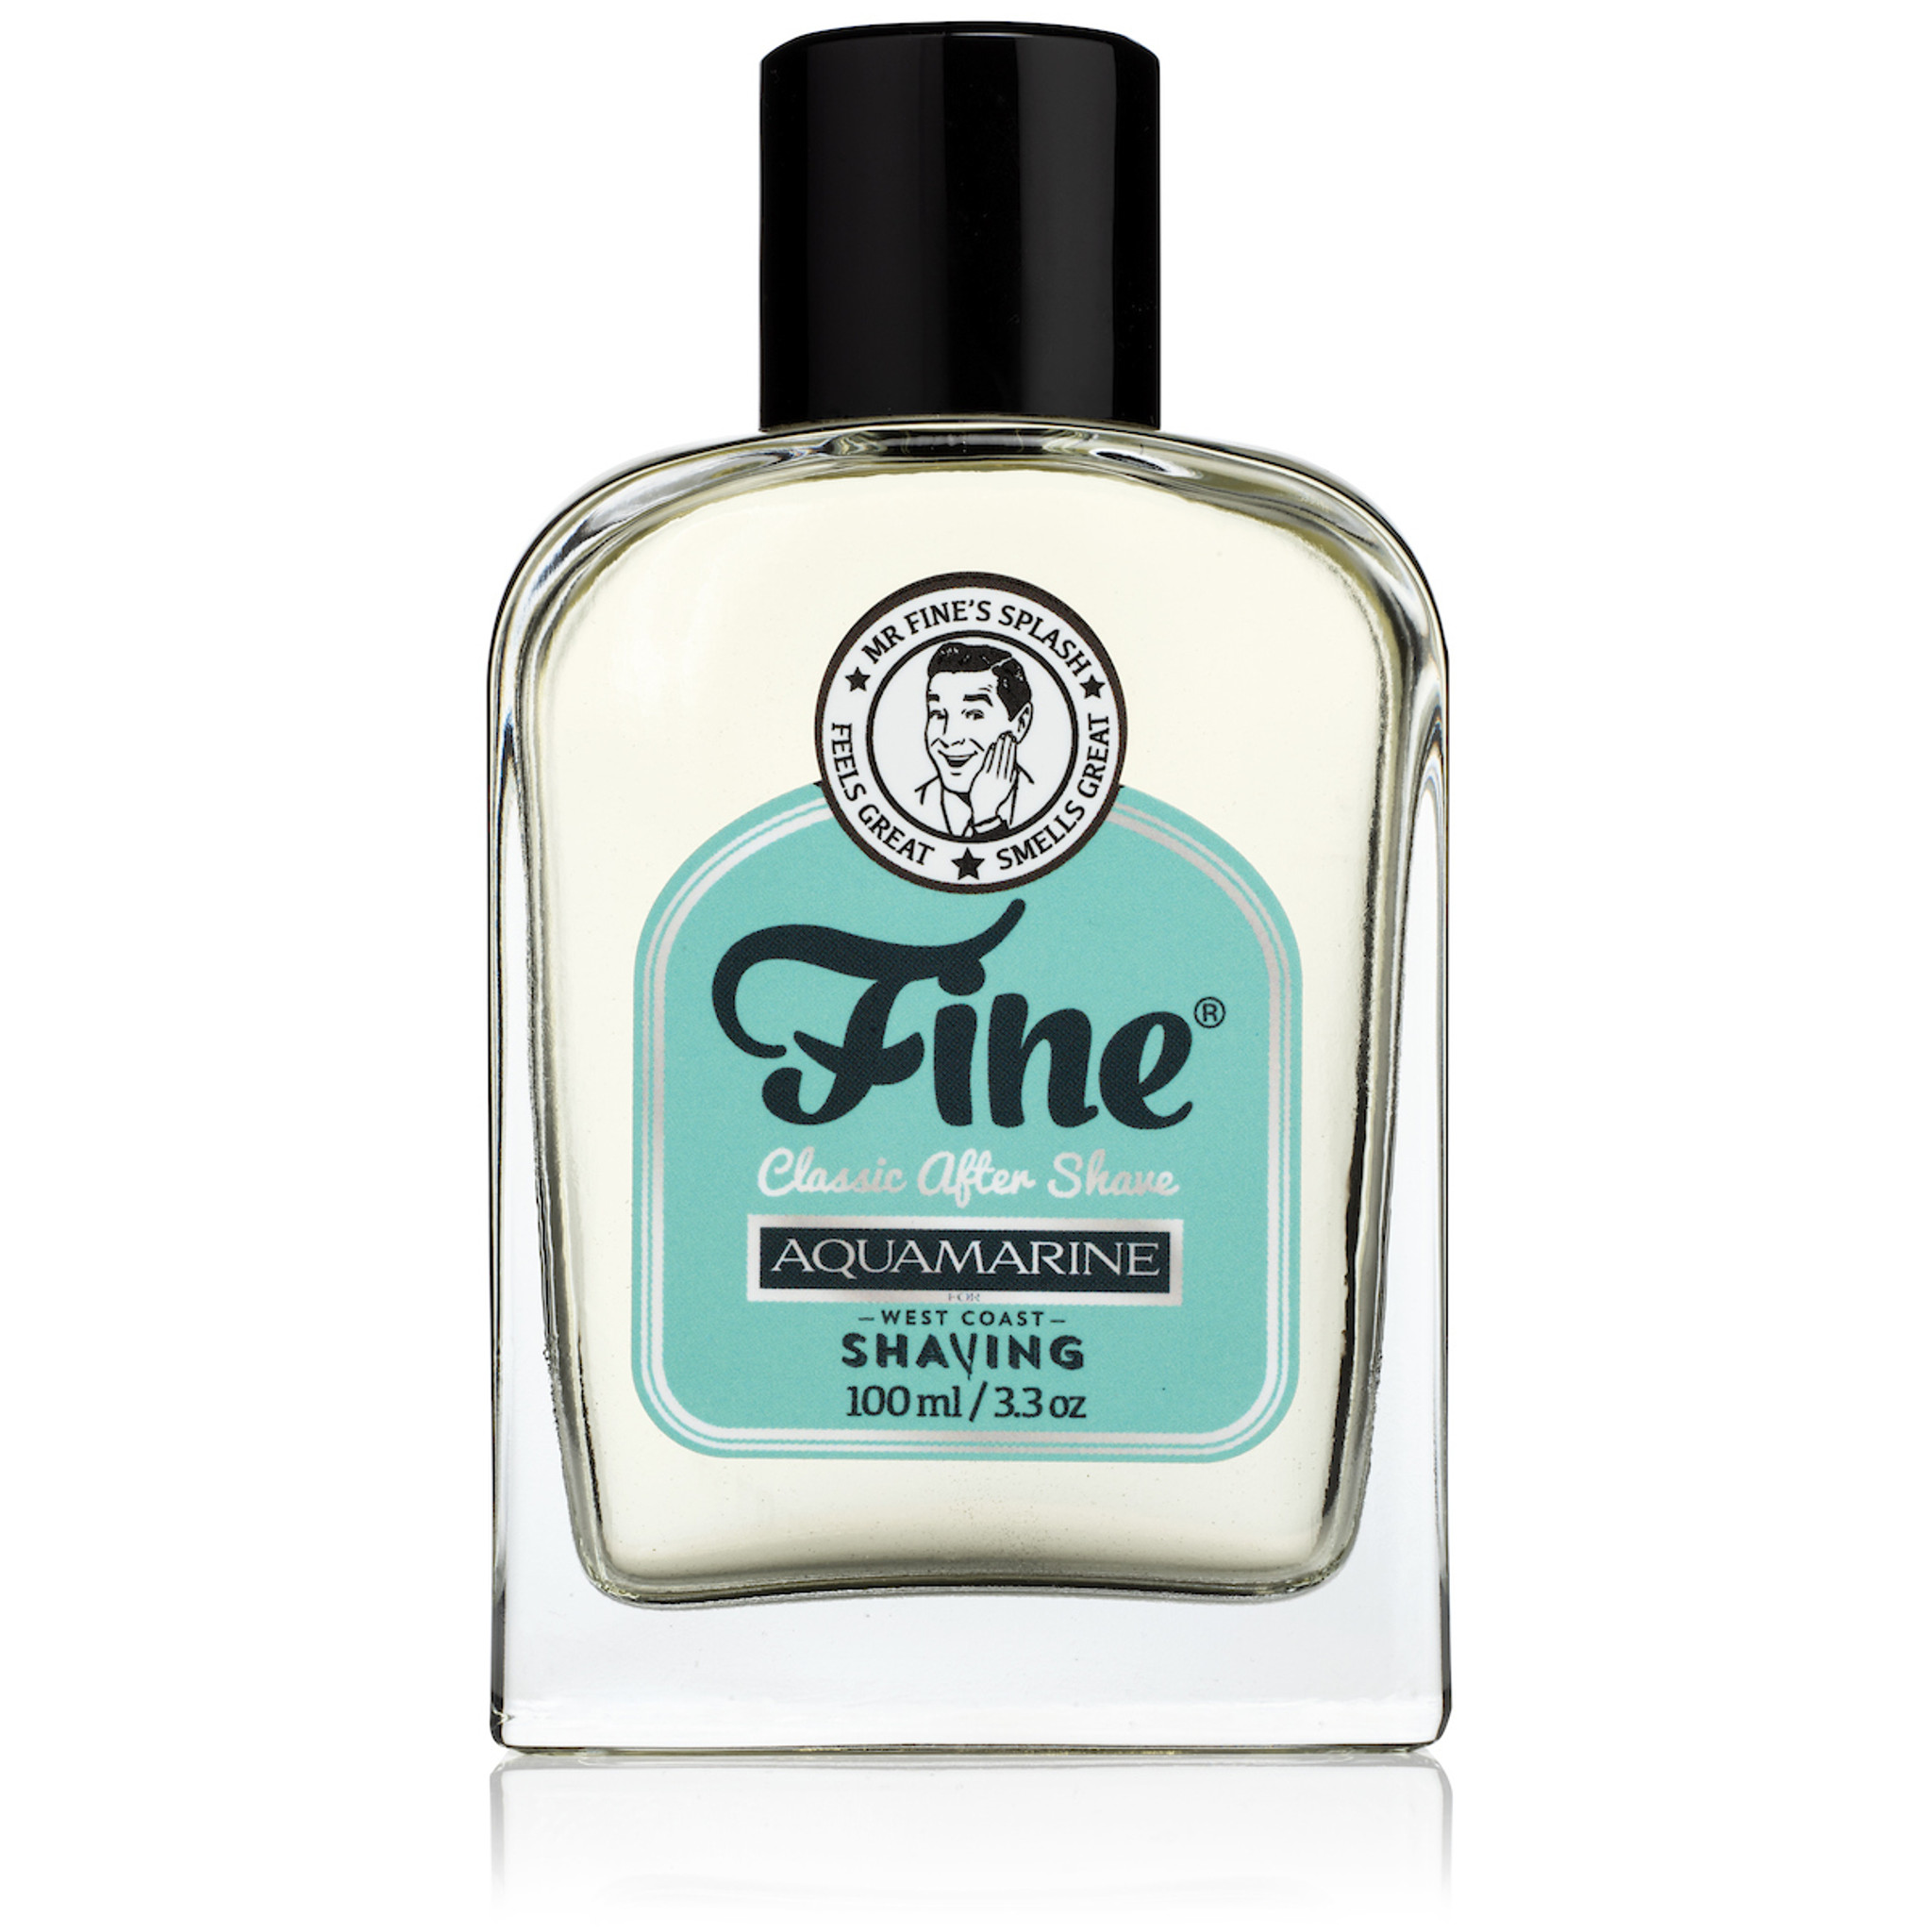 Fine Aquamarine Aftershave for West Coast Shaving